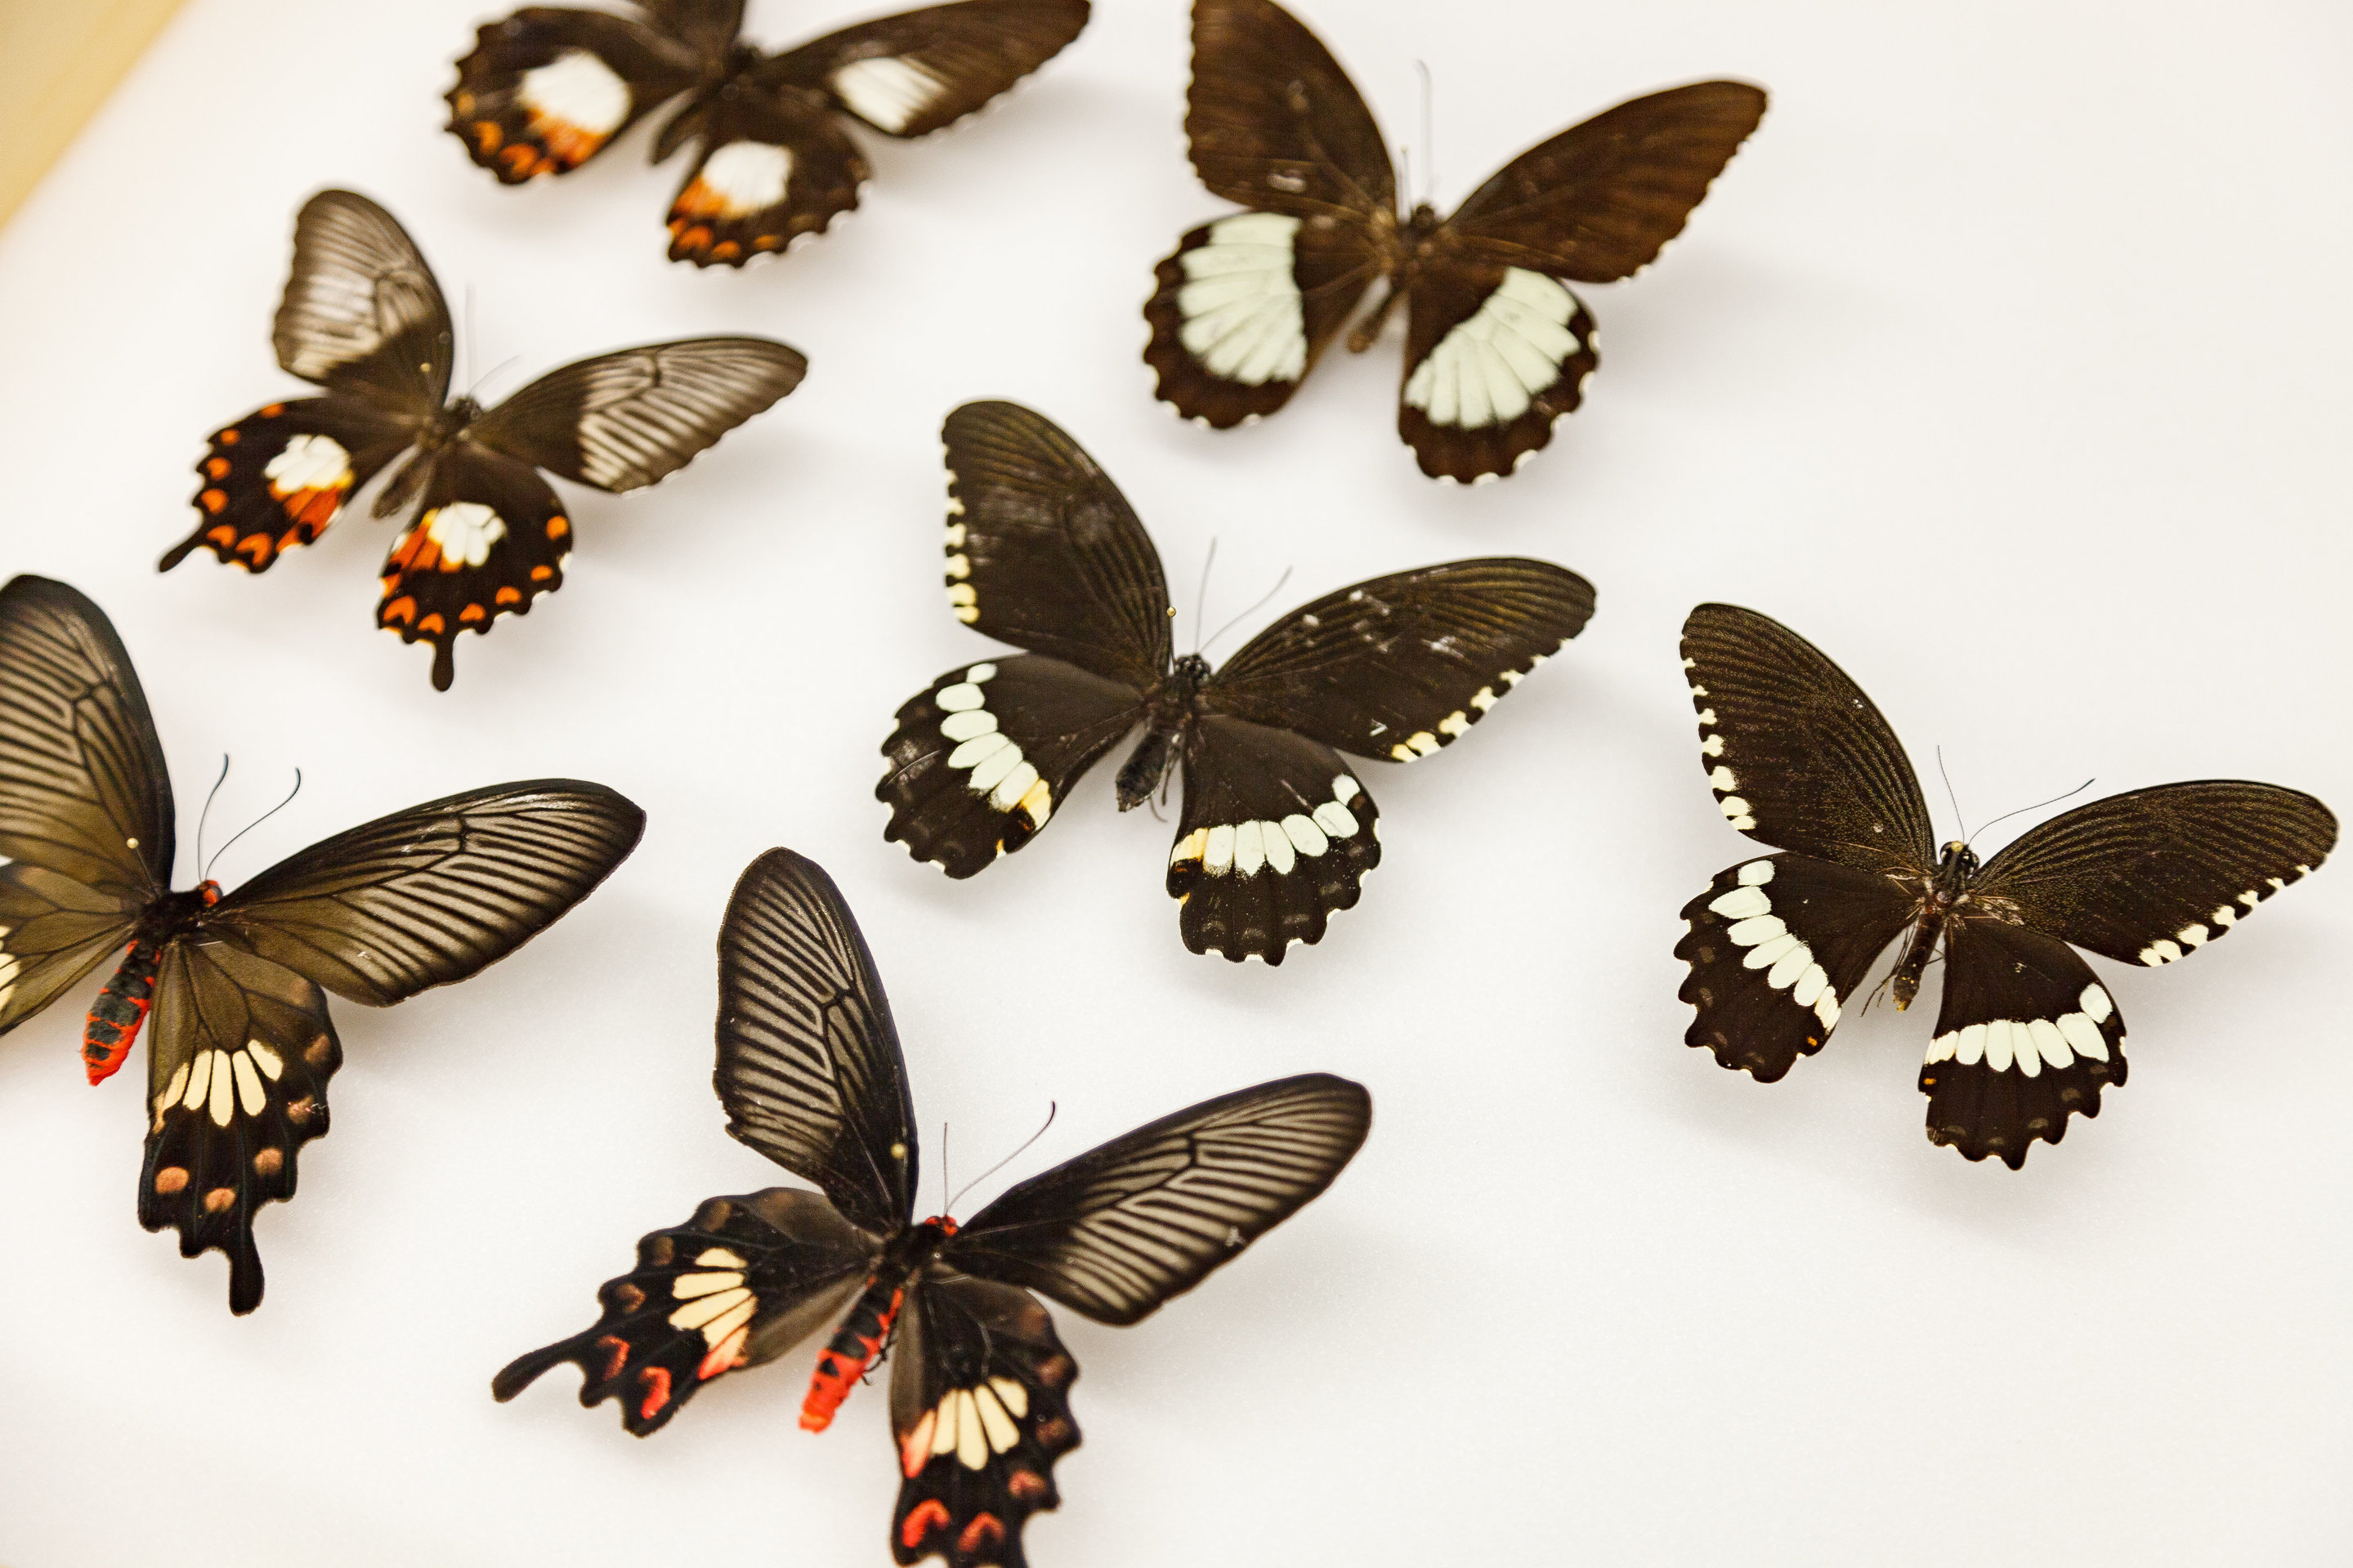 how a flipped gene helped butterflies evolve mimicry